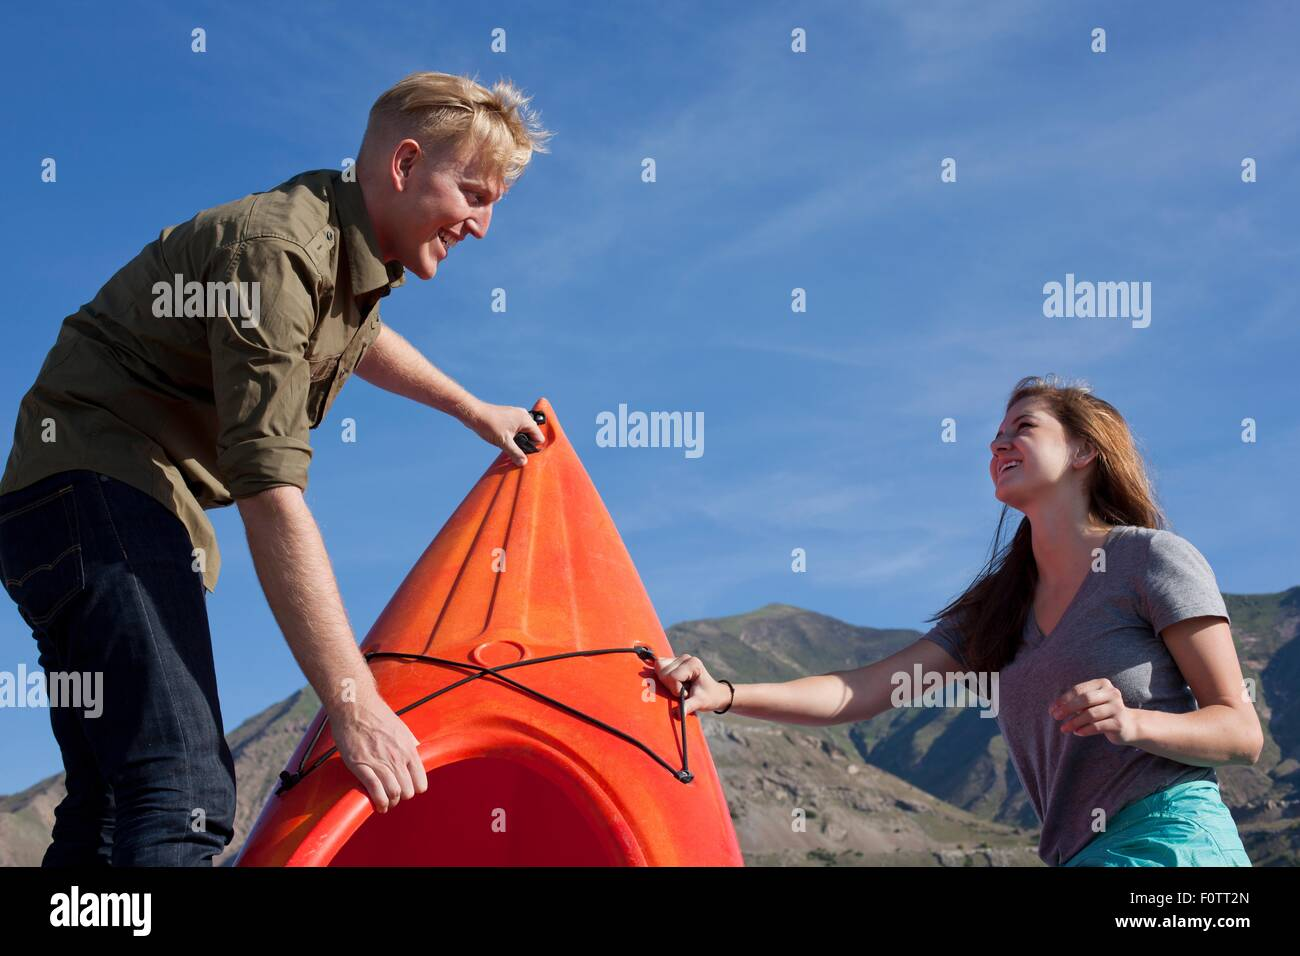 Young couple preparing orange kayak, looking at each other smiling - Stock Image